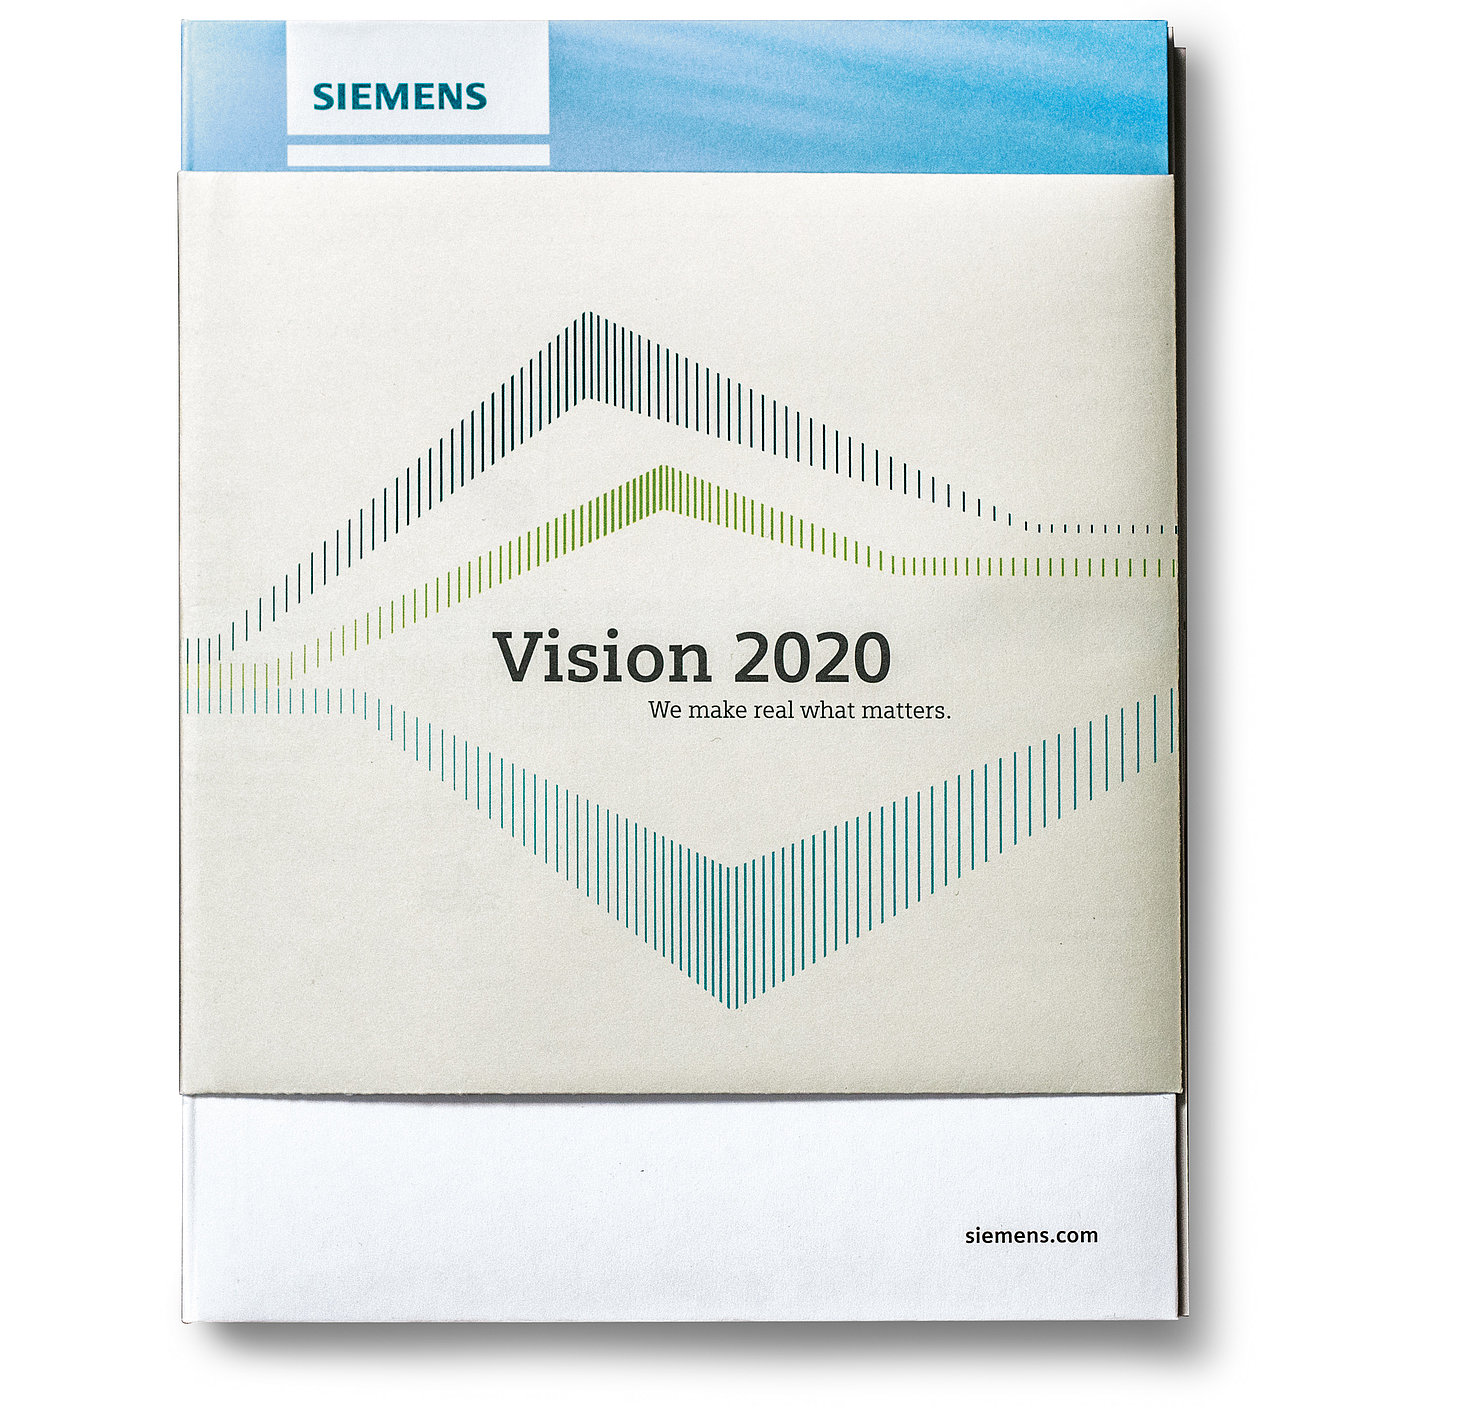 Vision 2020 – Siemens Annual Report 2014 | Red Dot Design Award